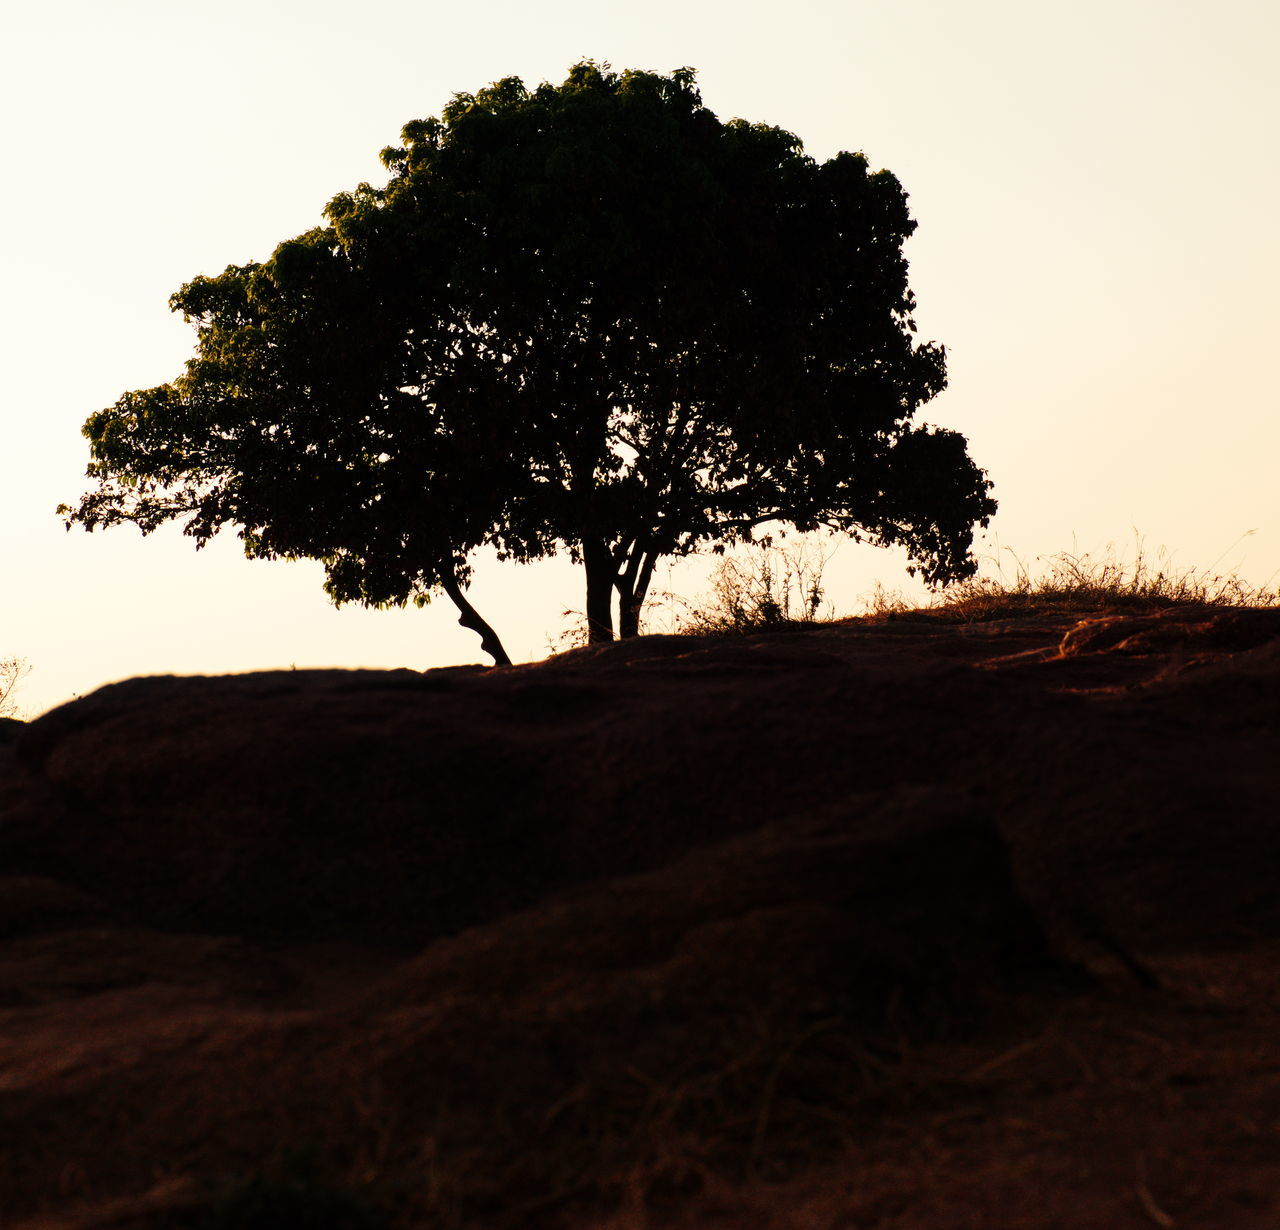 tree, landscape, silhouette, nature, beauty in nature, tranquil scene, scenics, sunset, tranquility, lone, sky, outdoors, no people, growth, clear sky, grass, day